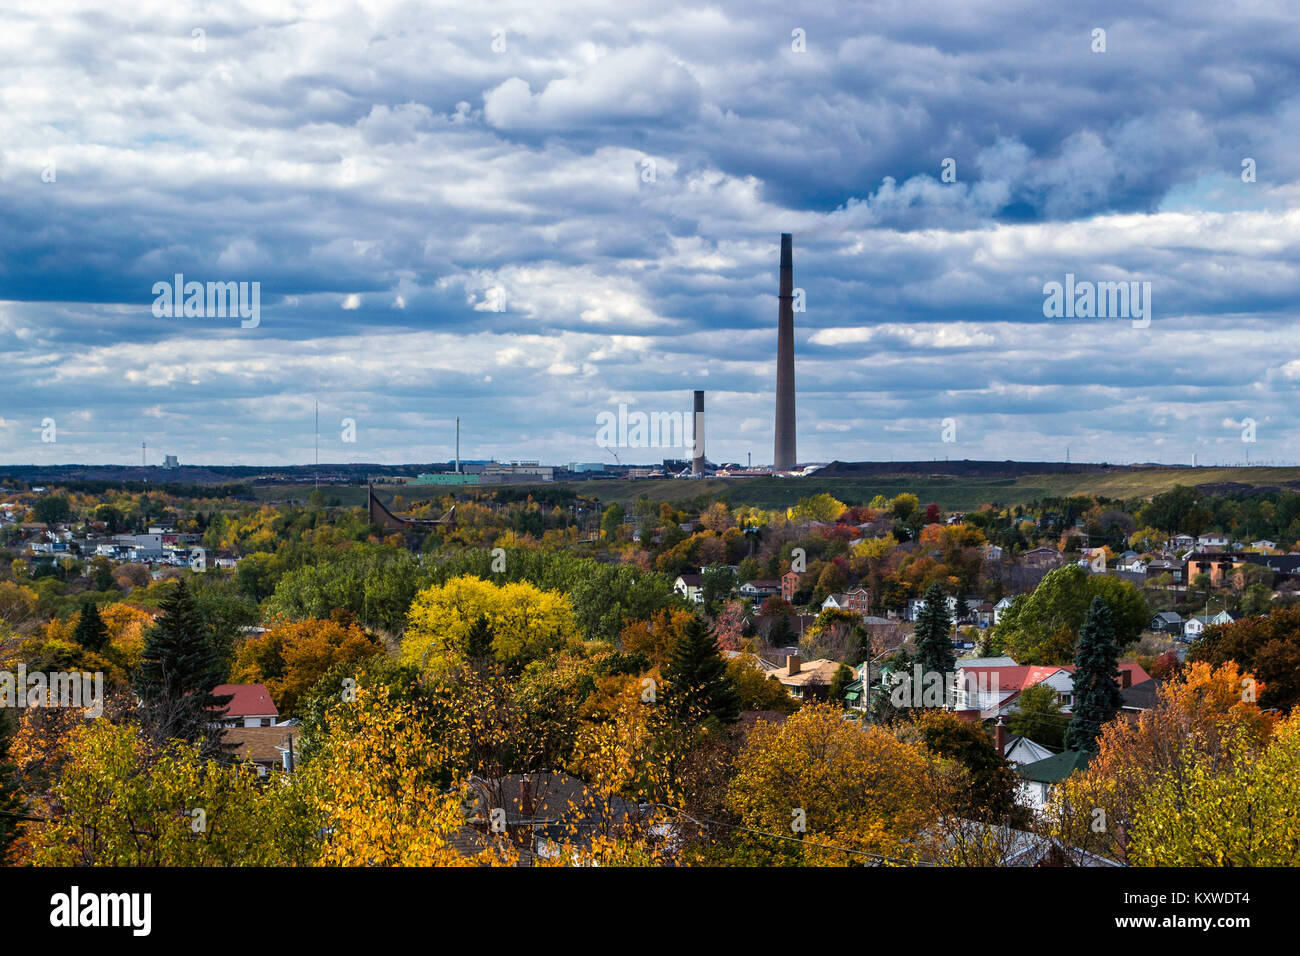 this landmark is visible for many miles - Stock Image